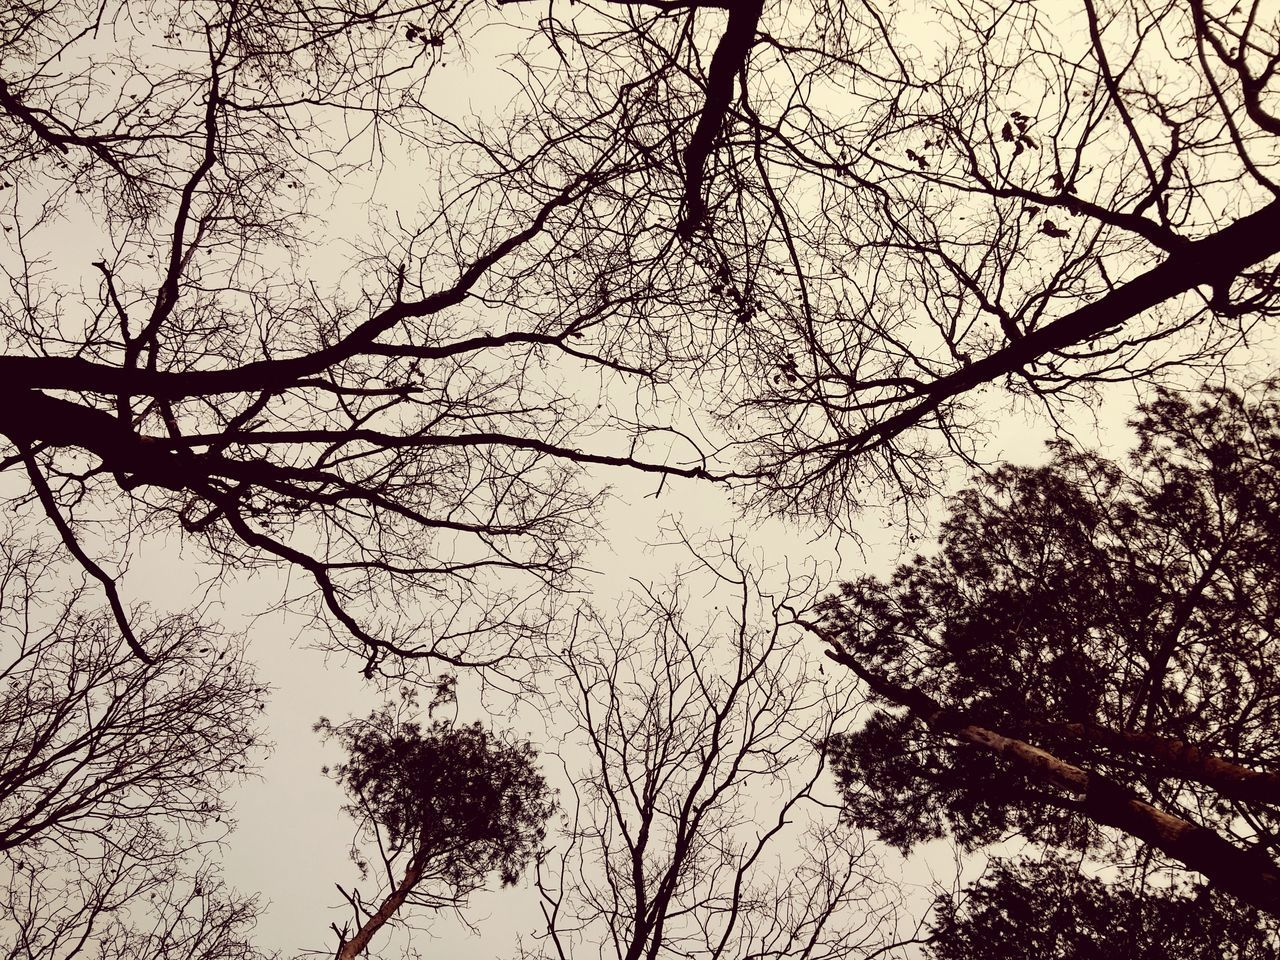 tree, branch, low angle view, bare tree, nature, beauty in nature, outdoors, sky, no people, tranquility, growth, clear sky, scenics, silhouette, day, forest